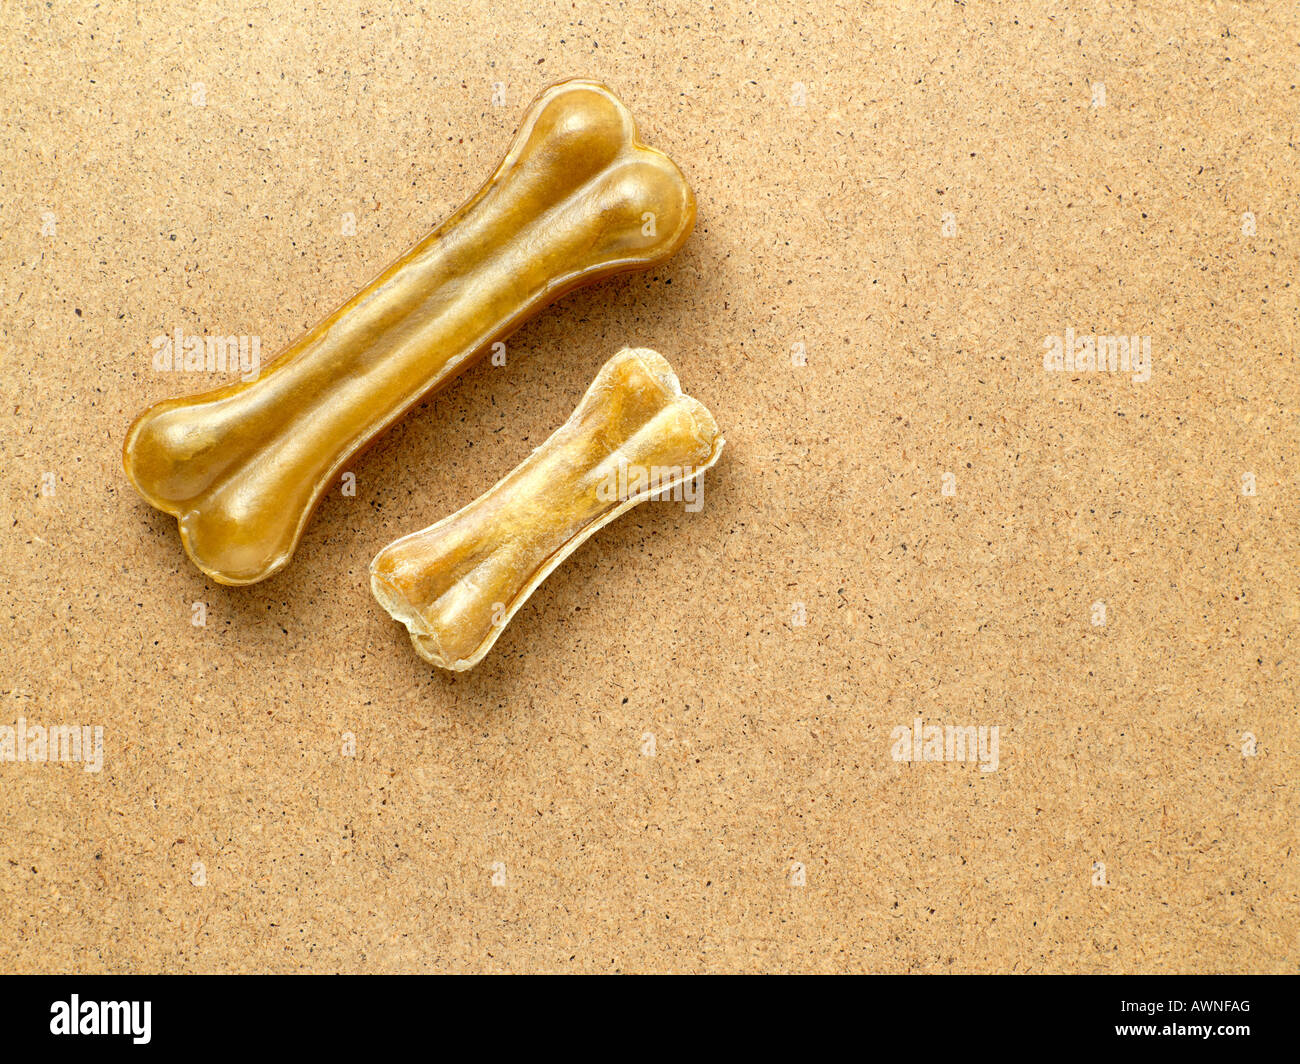 A large and small dog bone - Stock Image